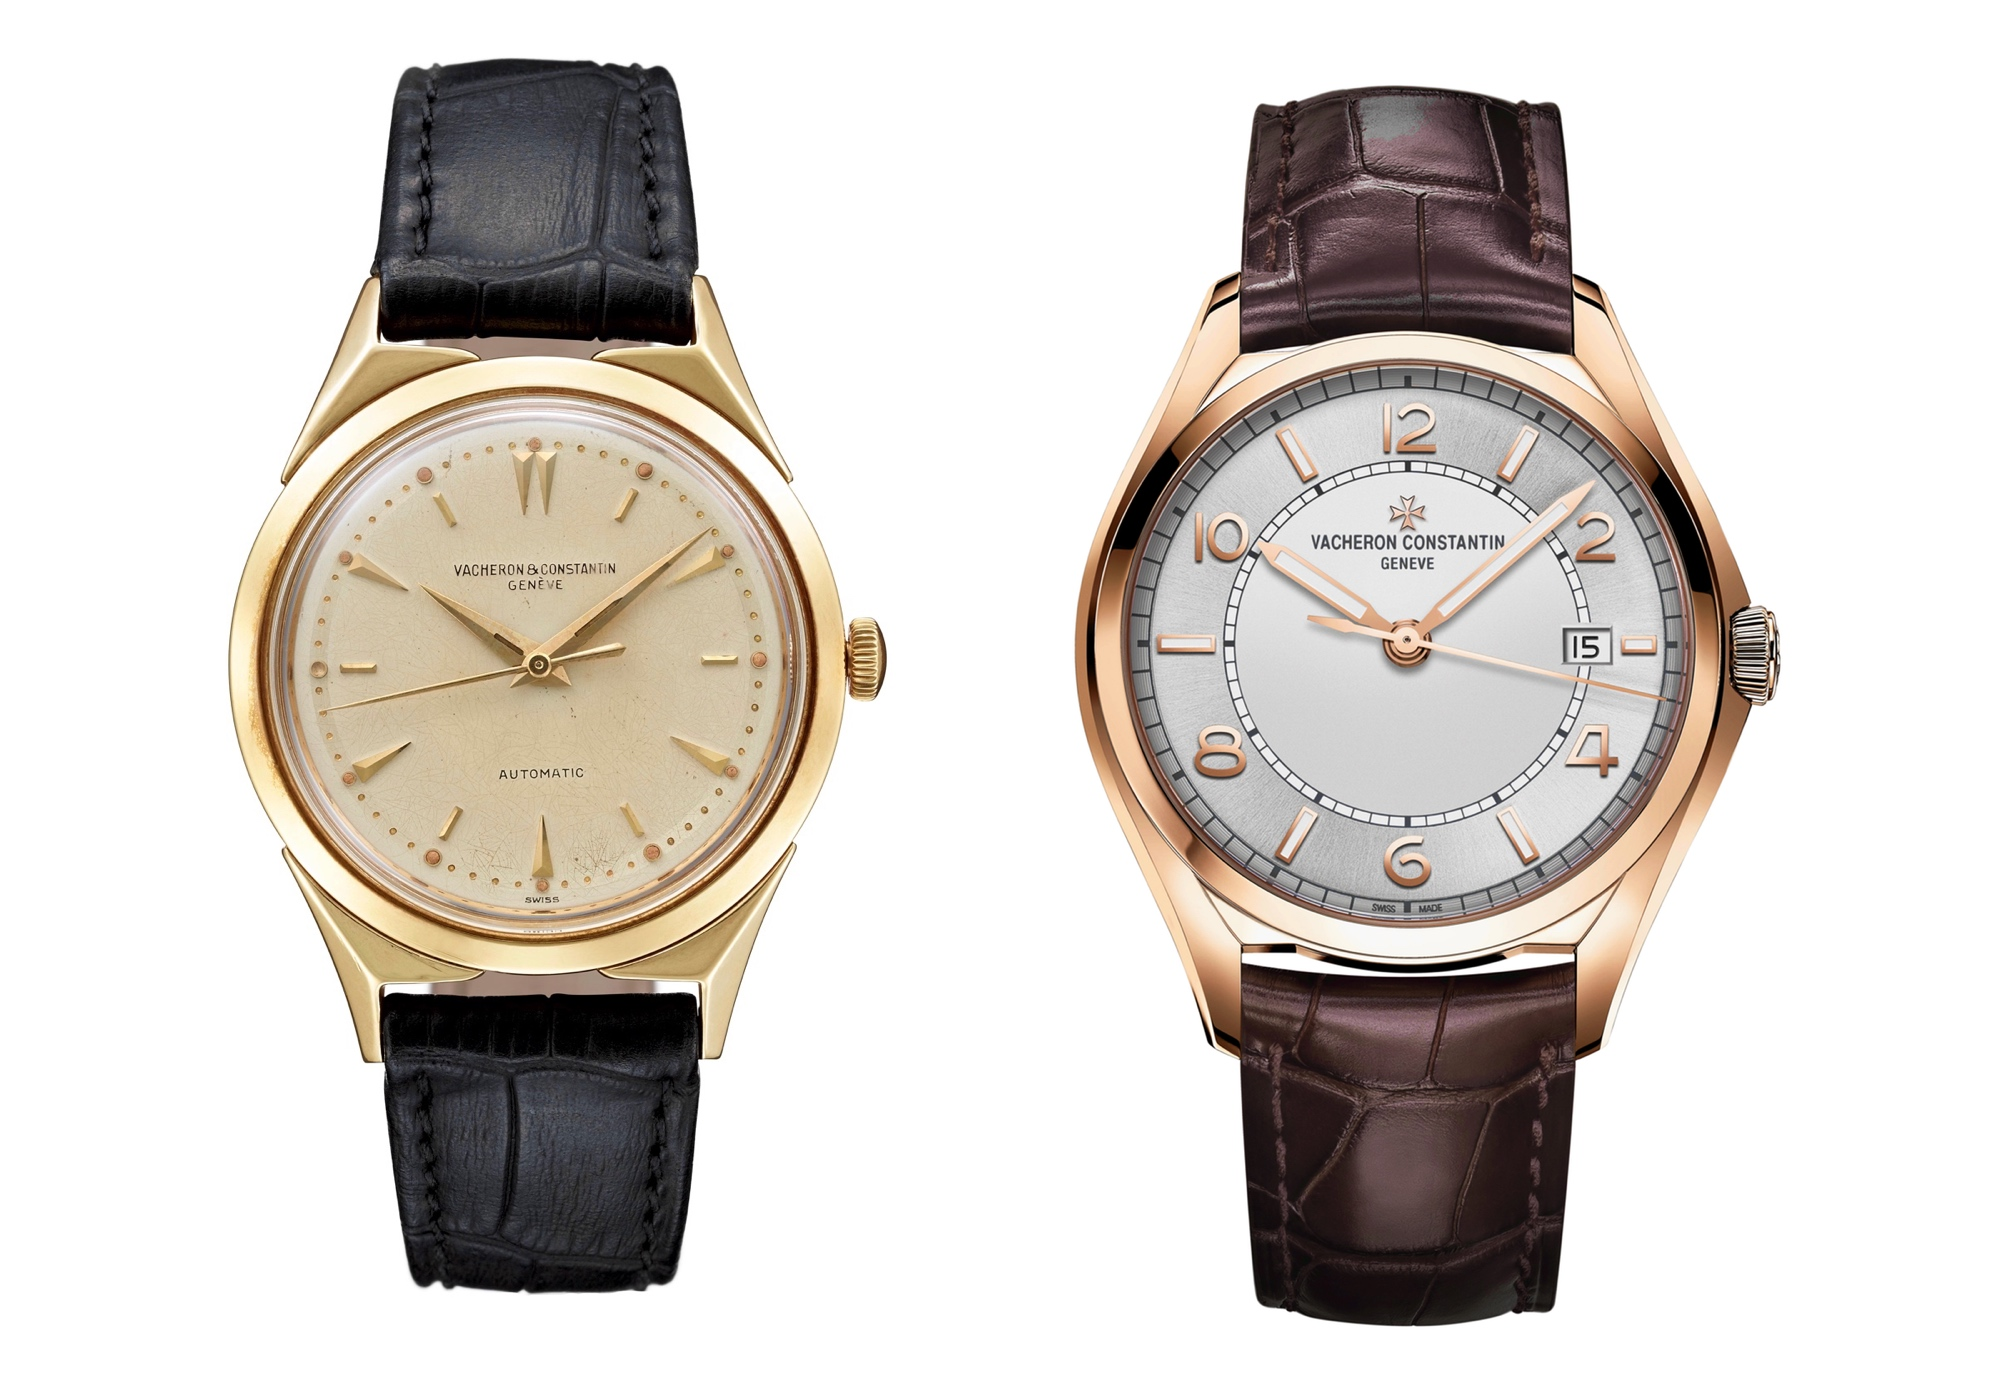 Vacheron Constantin 6073 vs FIFTYSIX